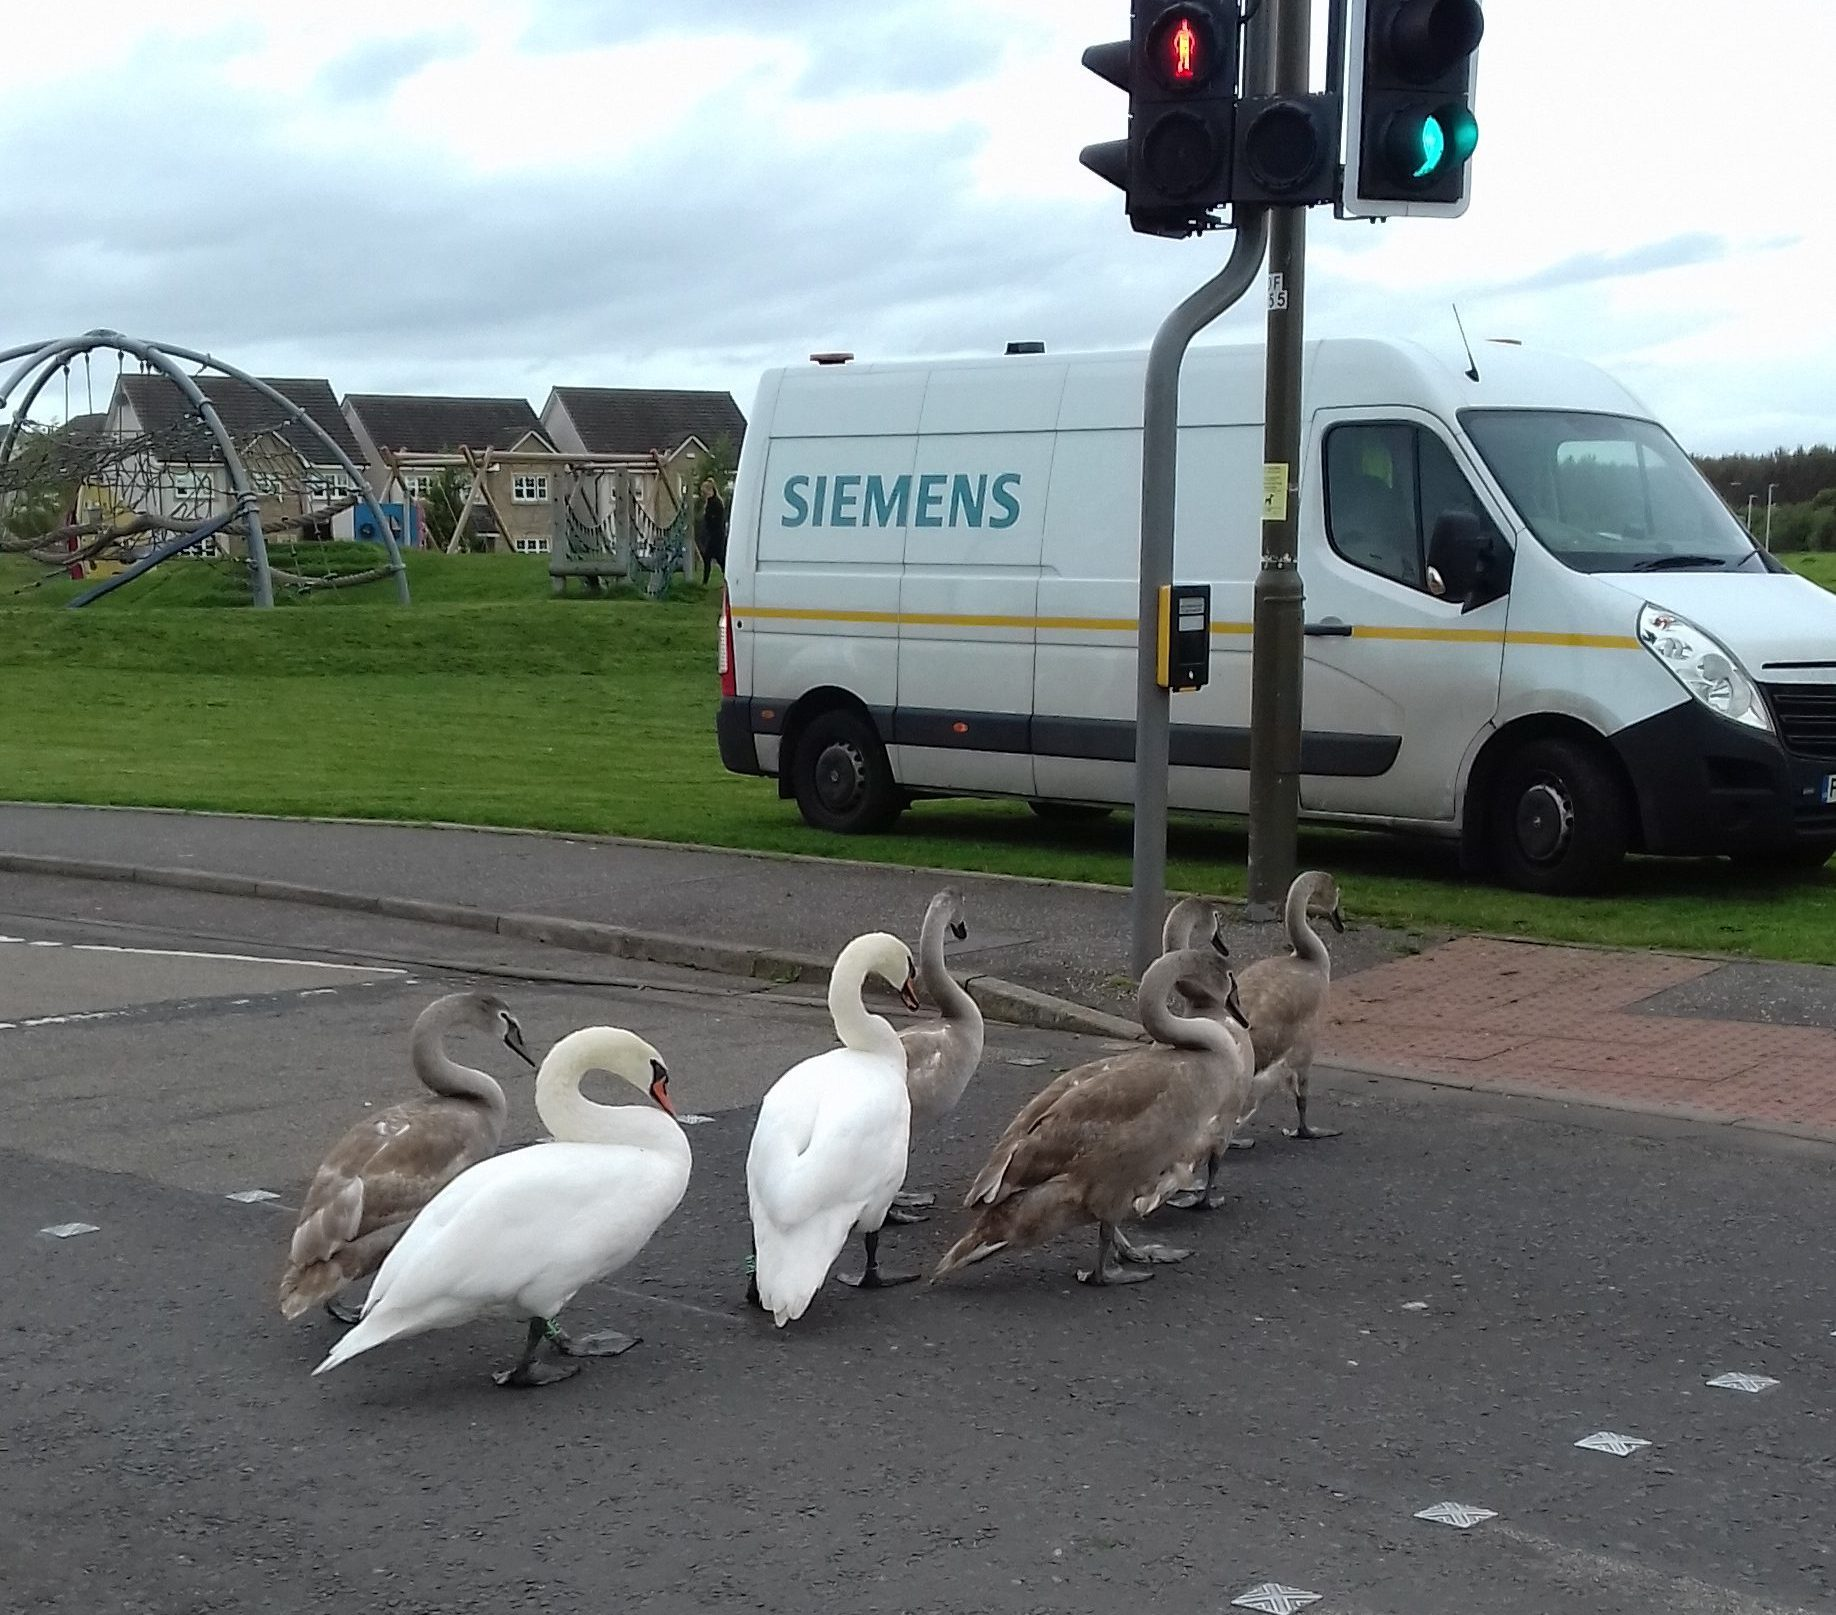 Swans (Scottish SPCA)